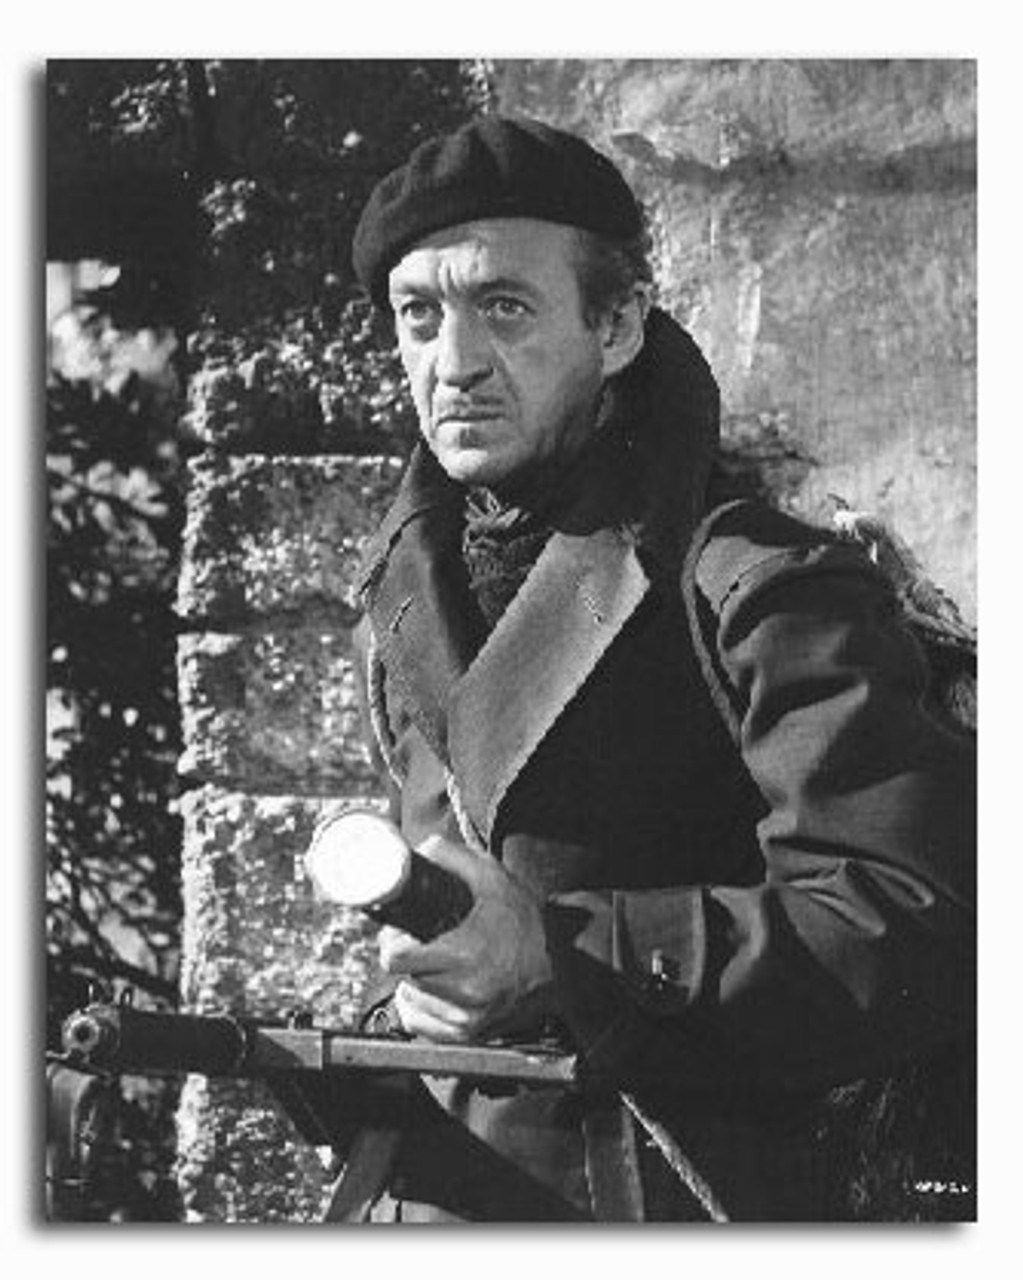 SS2240199) Movie picture of David Niven buy celebrity photos and posters at  Starstills.com